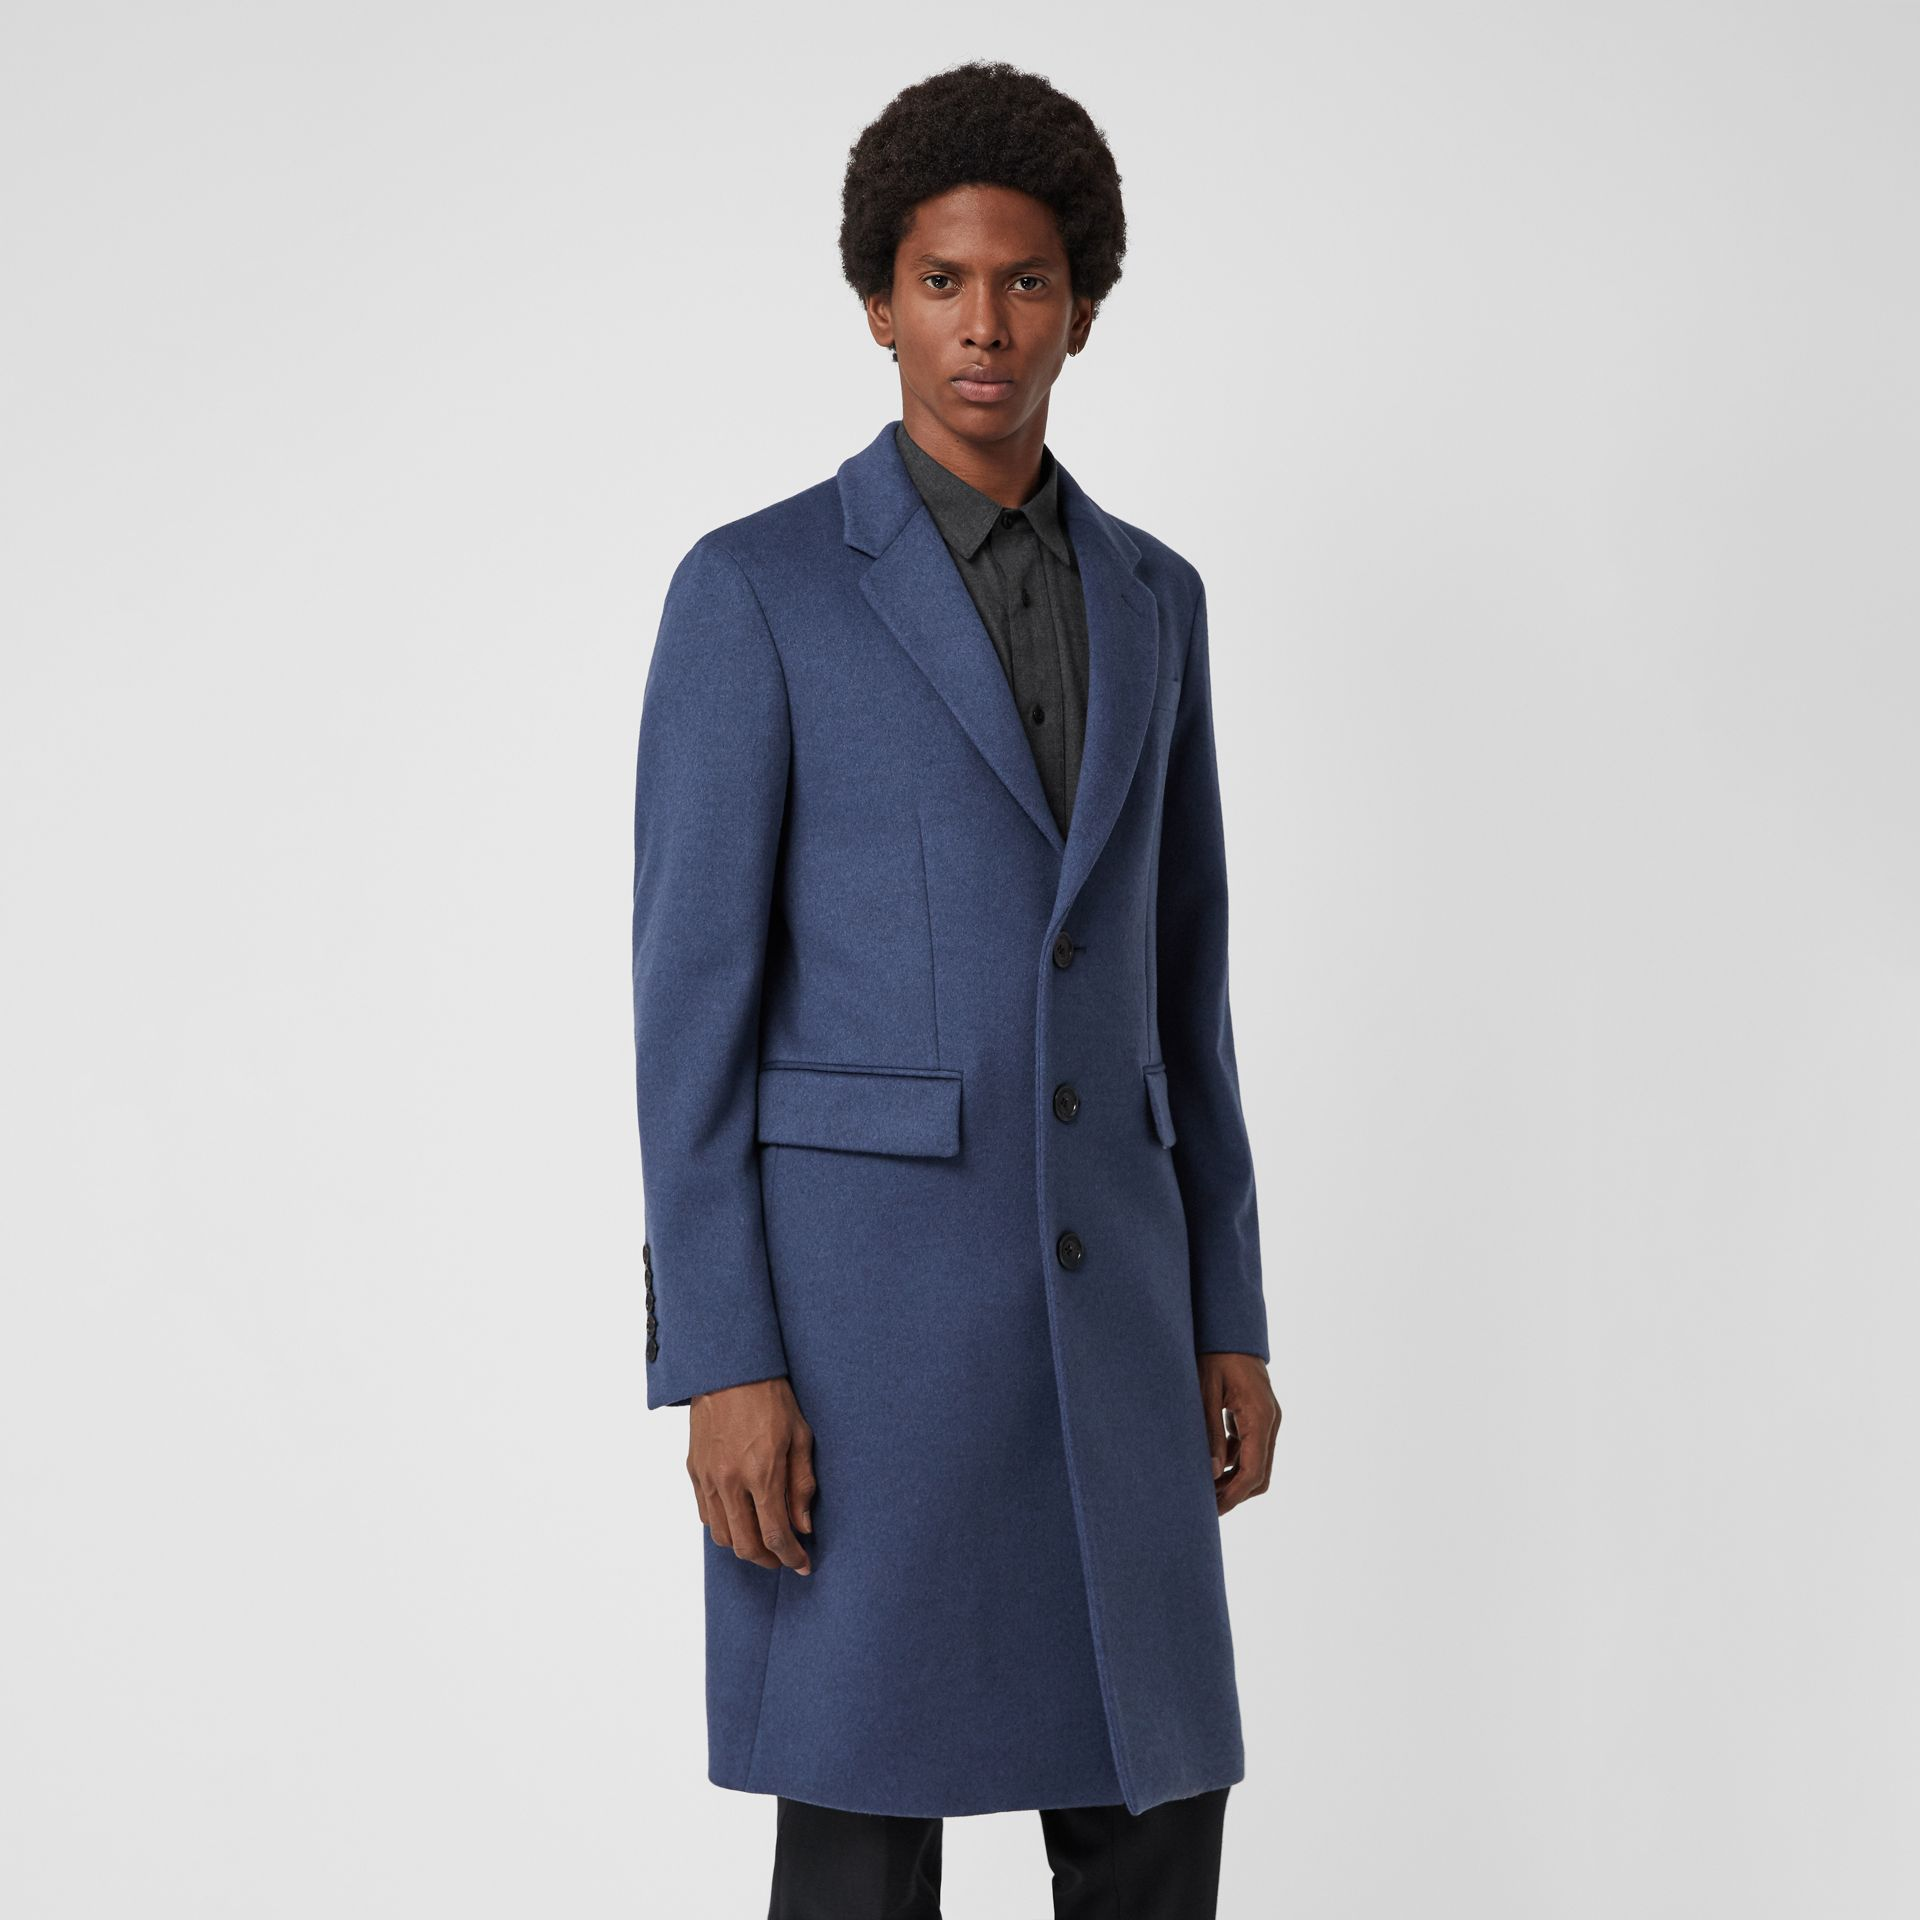 Wool Cashmere Tailored Coat in Dark Canvas Blue - Men | Burberry United Kingdom - gallery image 4